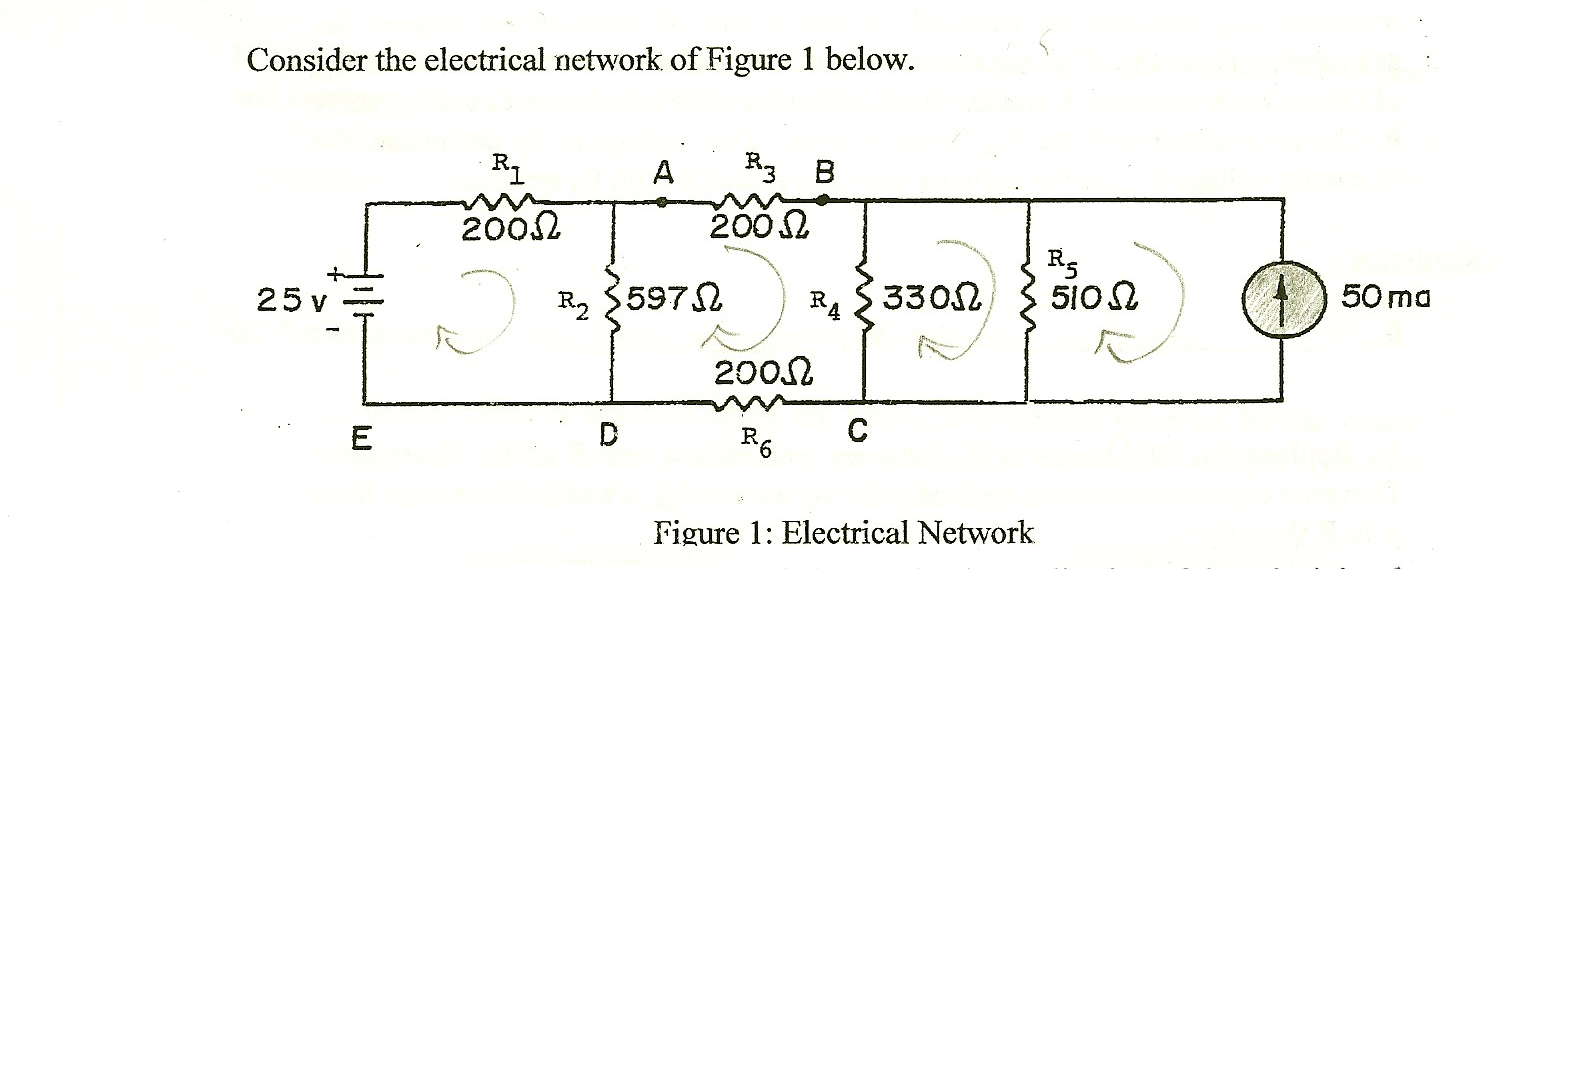 Consider the electrical network of Figure 1 below